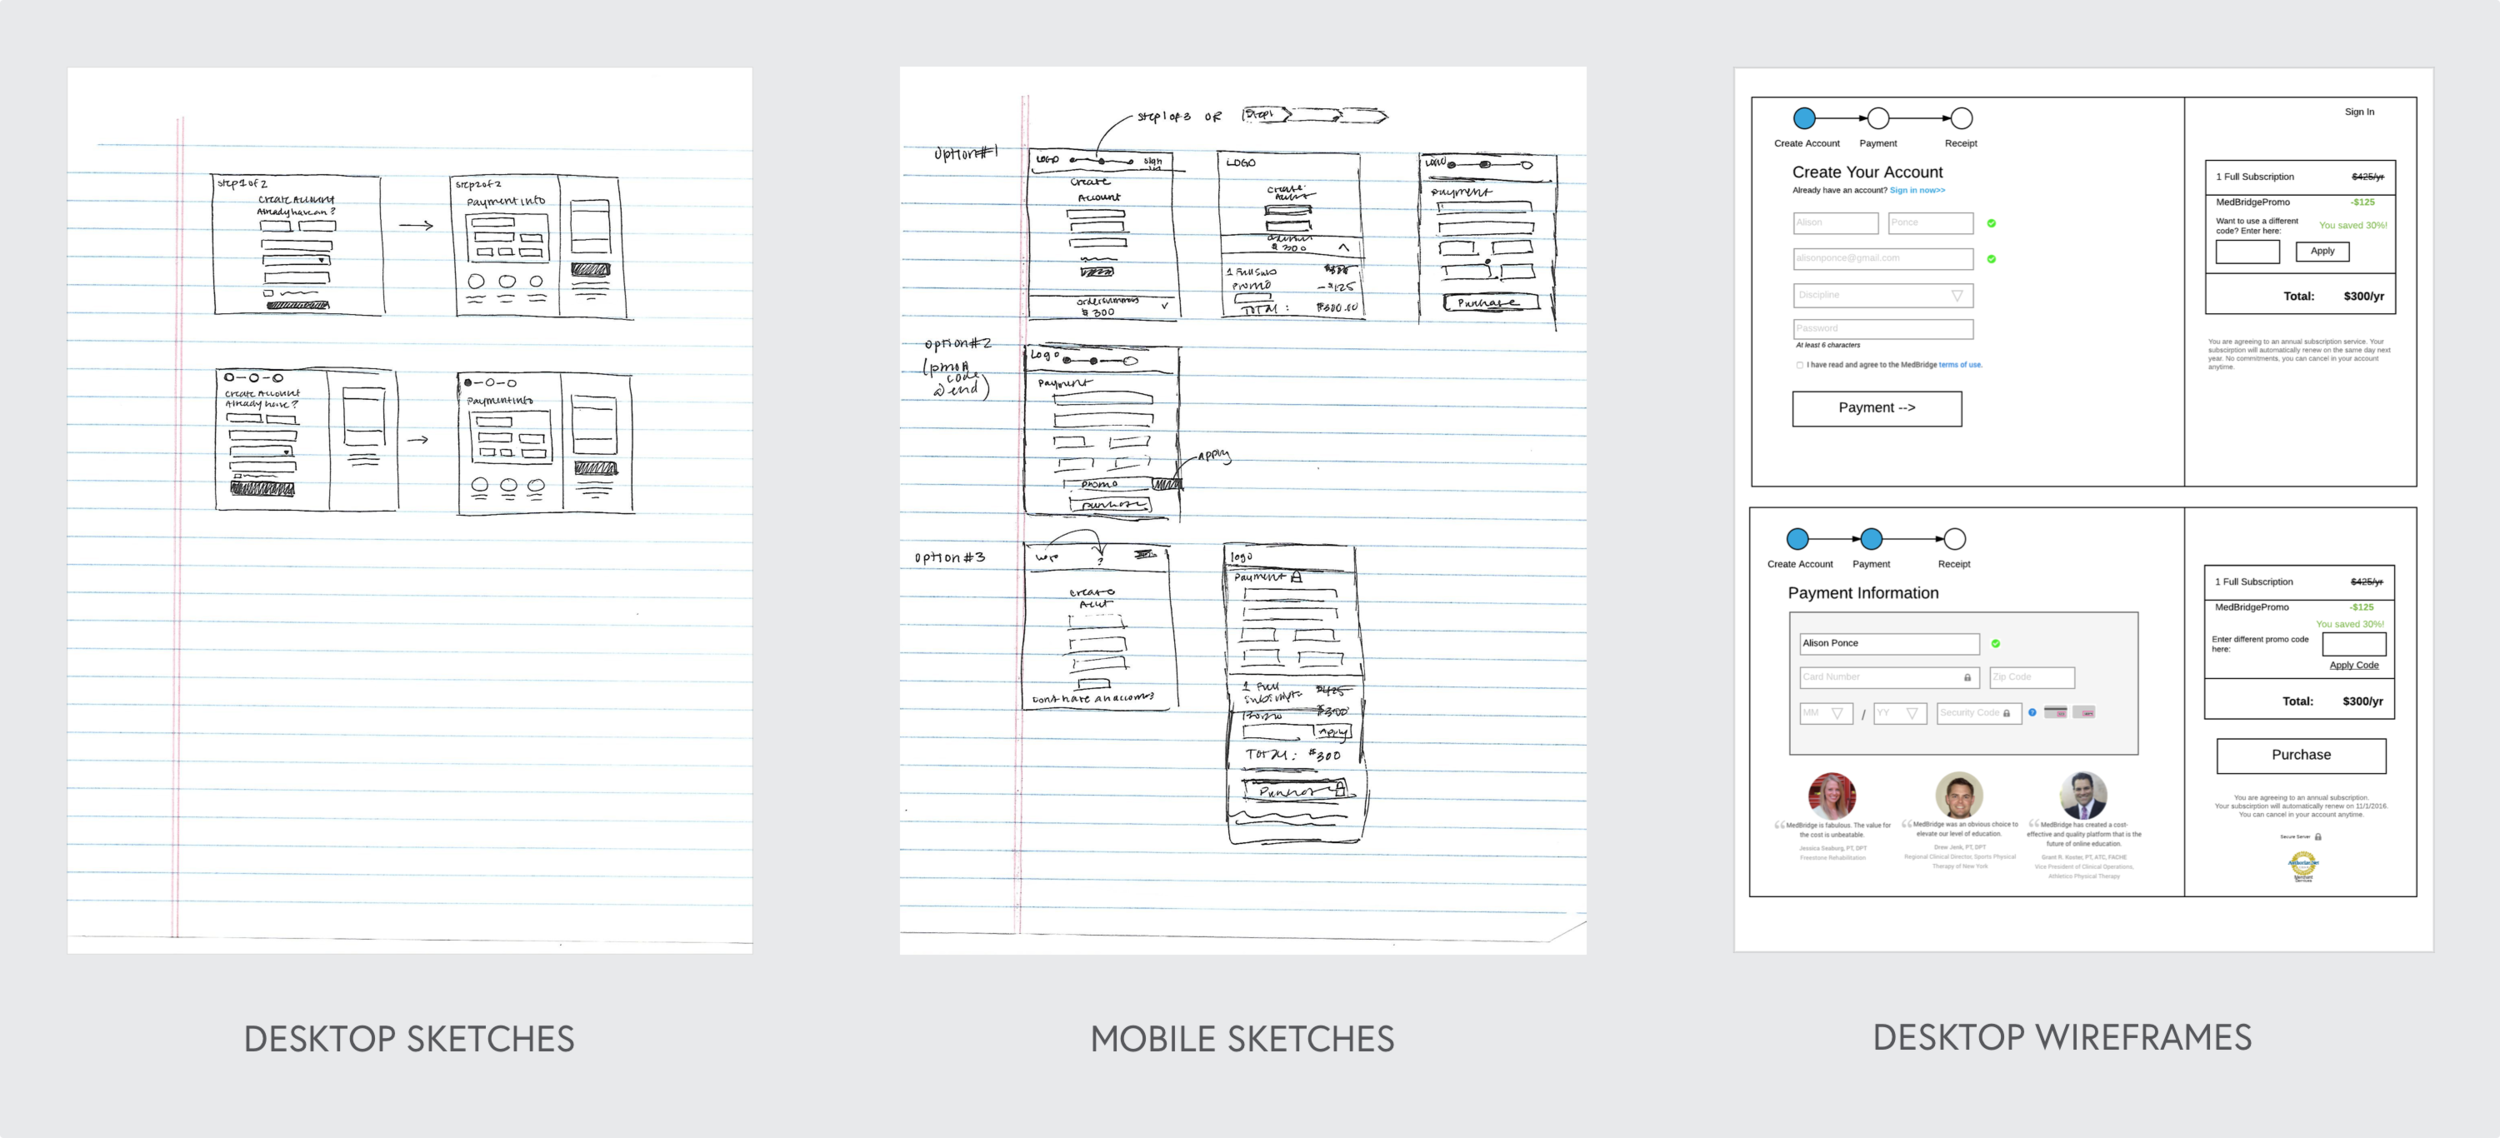 sketches-wireframes-cart.png